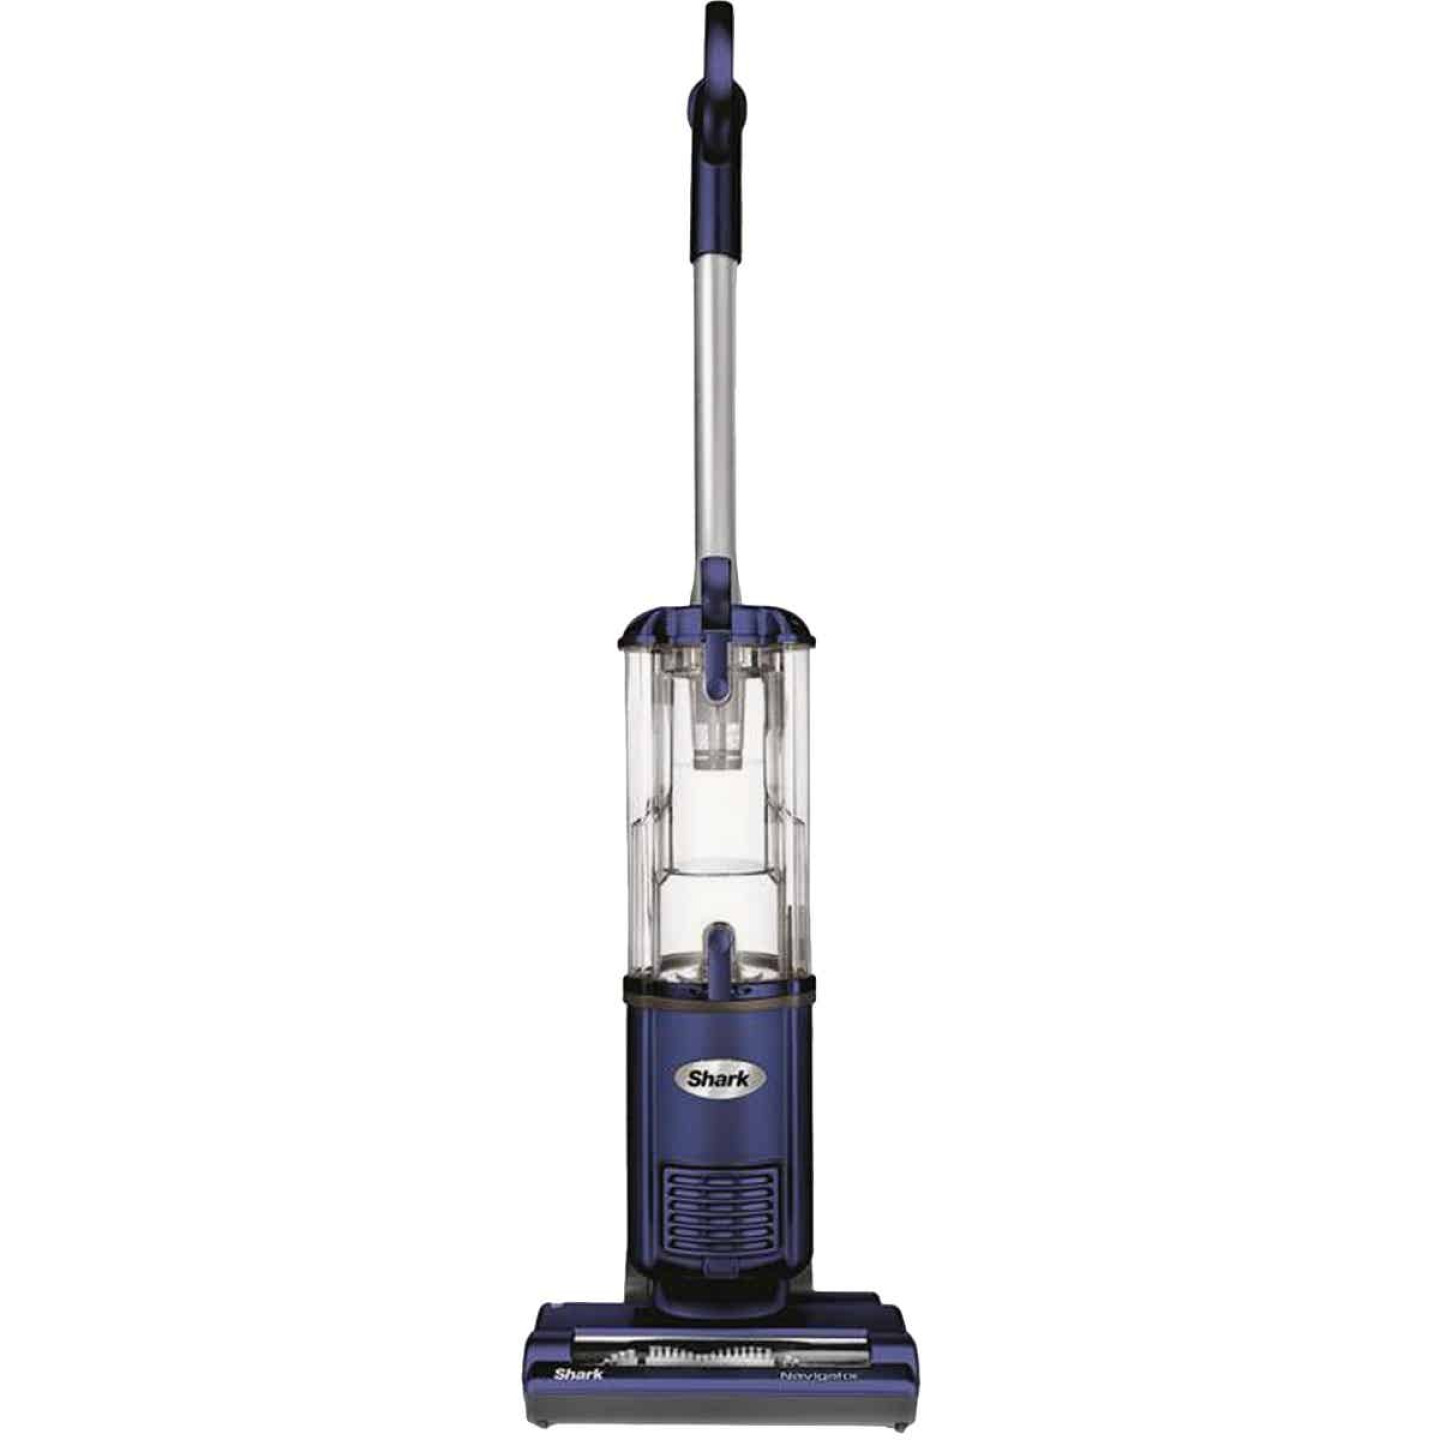 Shark Navigator Never Lose Suction Bagless Upright Vacuum Cleaner Image 1